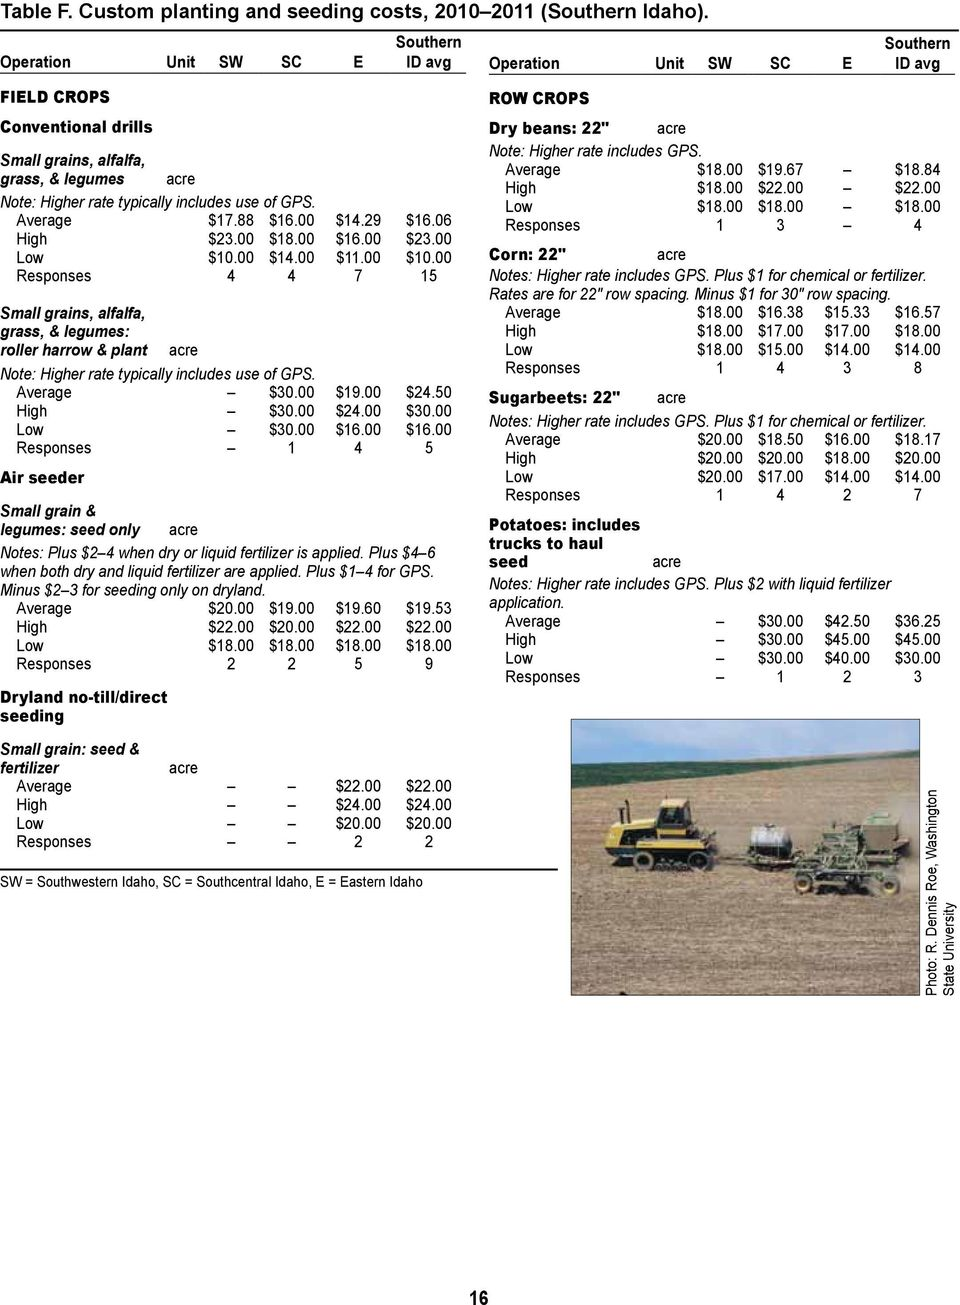 00 Responses 4 4 7 15 Small grains, alfalfa, grass, & legumes: roller harrow & plant acre Note: Higher rate typically includes use of GPS. Average $30.00 $19.00 $24.50 High $30.00 $24.00 $30.